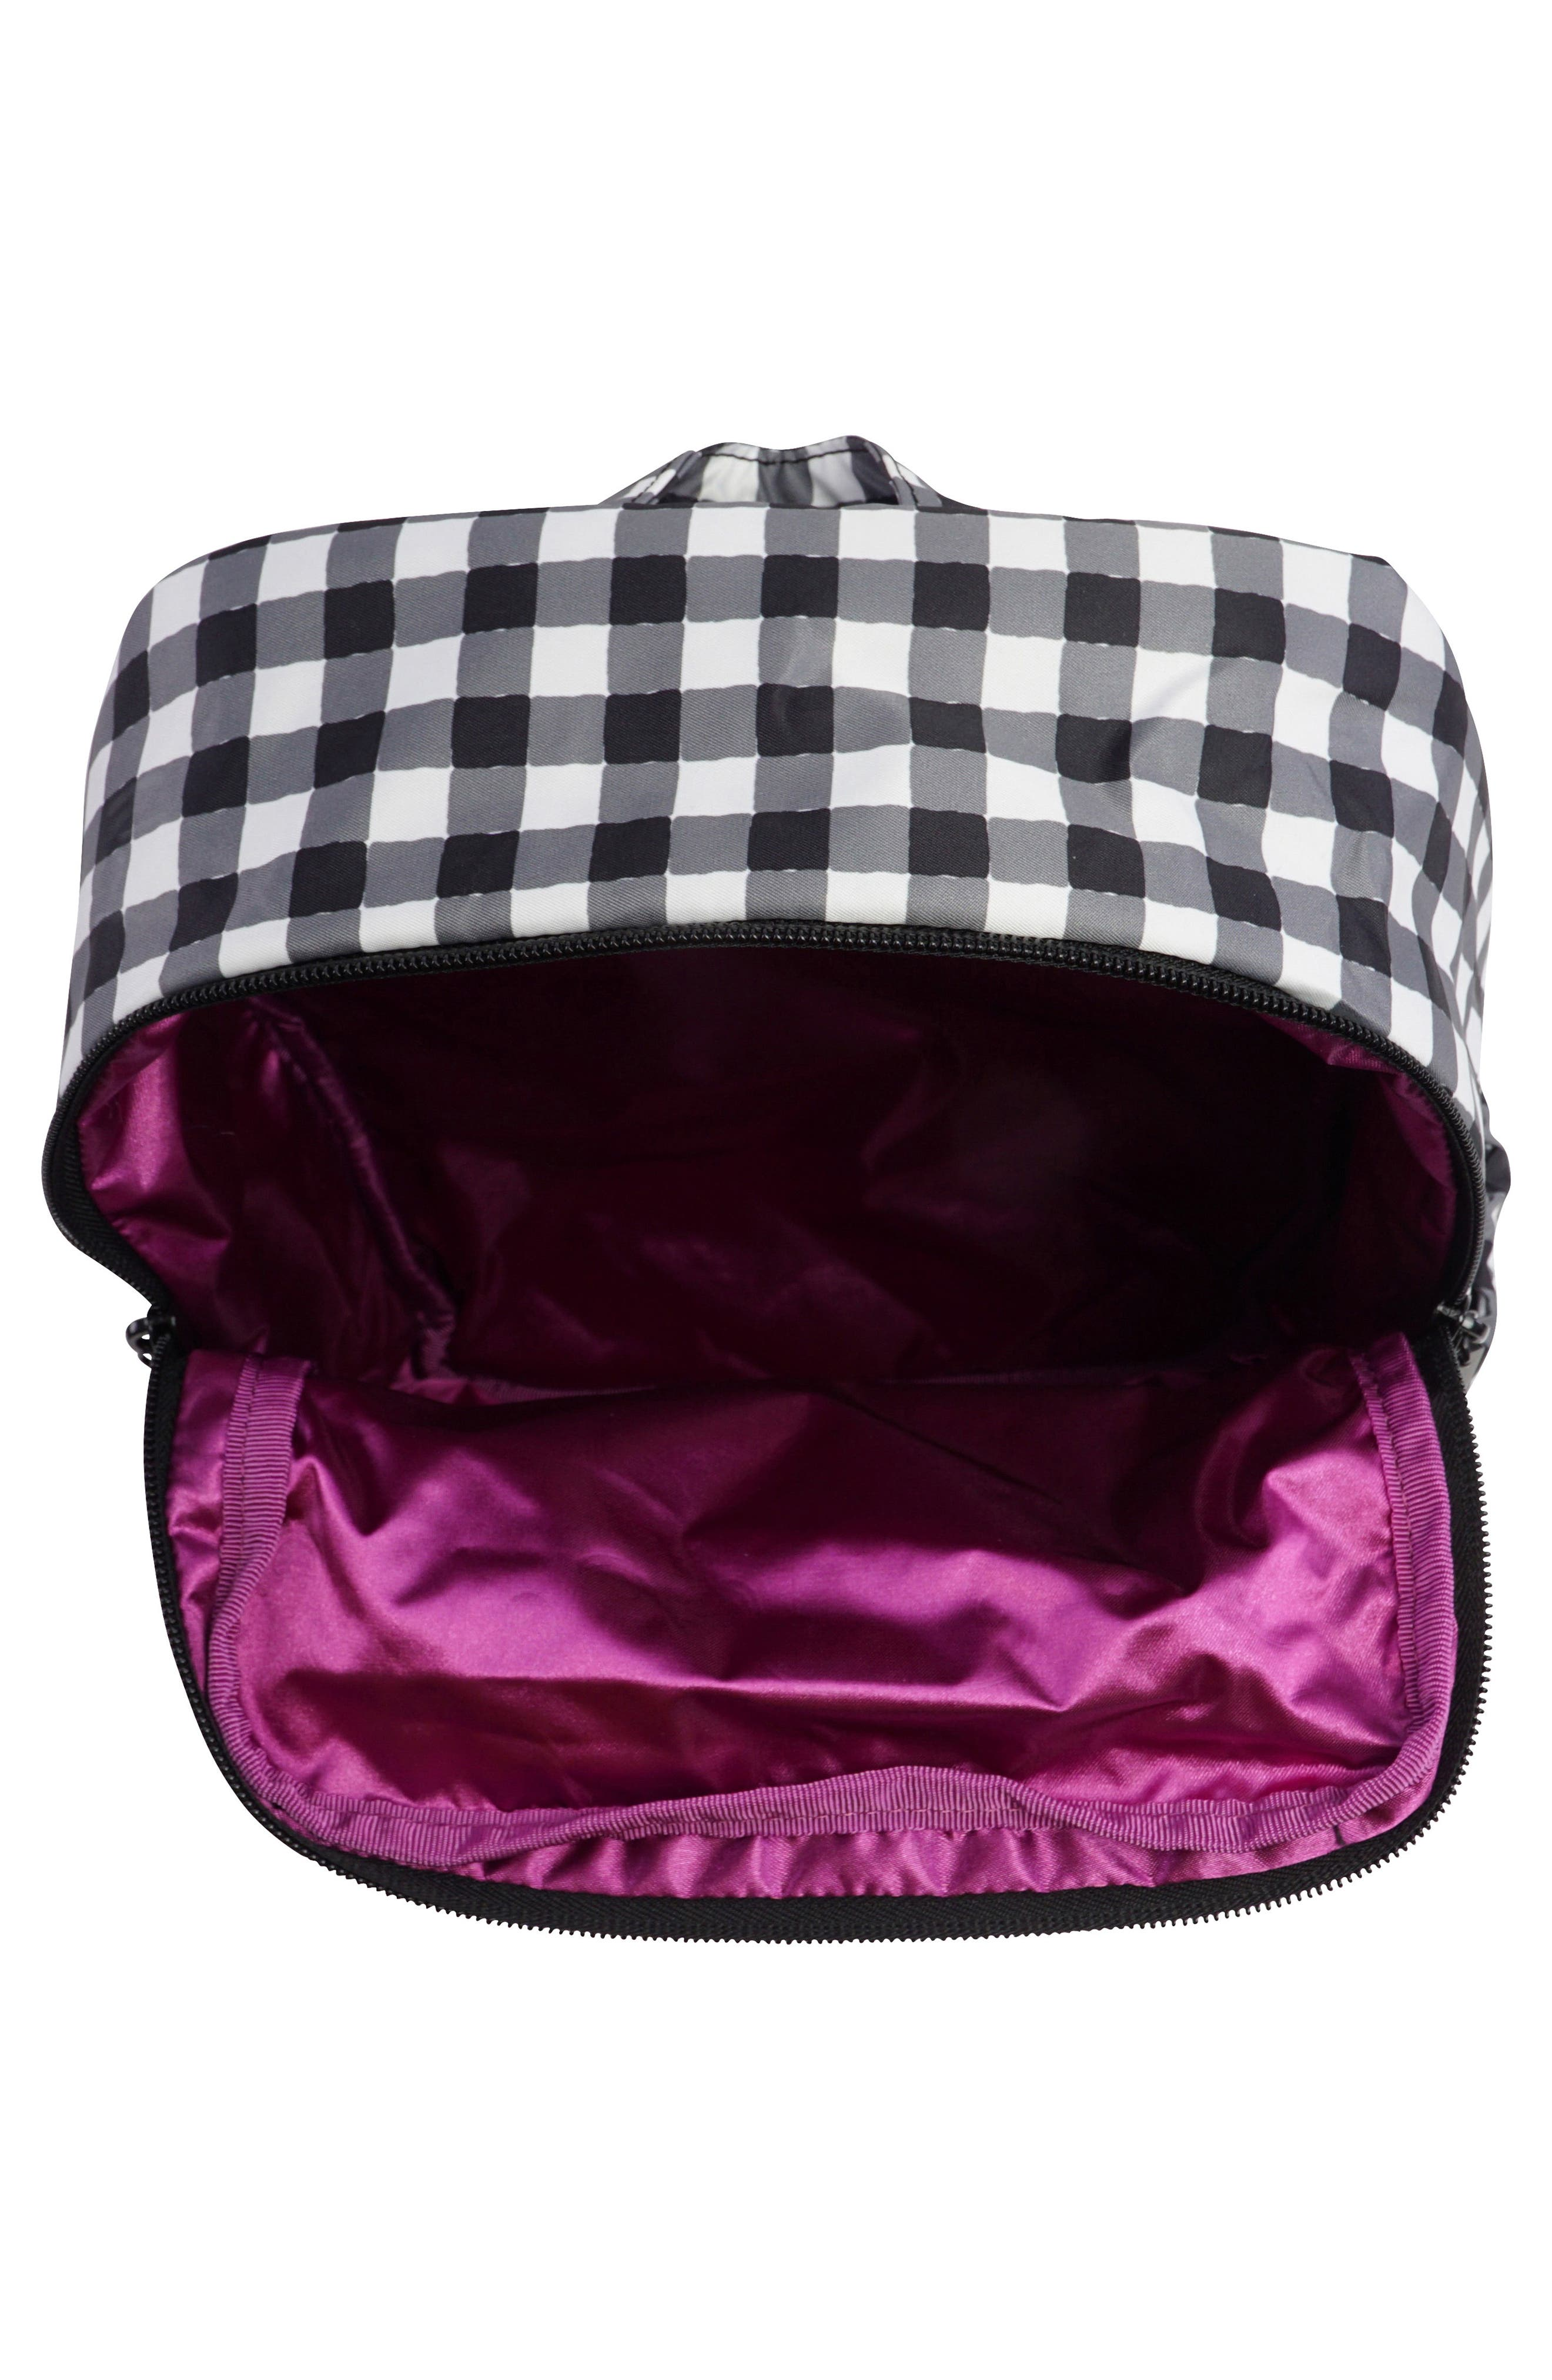 'Mini Be - Onyx Collection' Backpack,                             Alternate thumbnail 3, color,                             Gingham Style